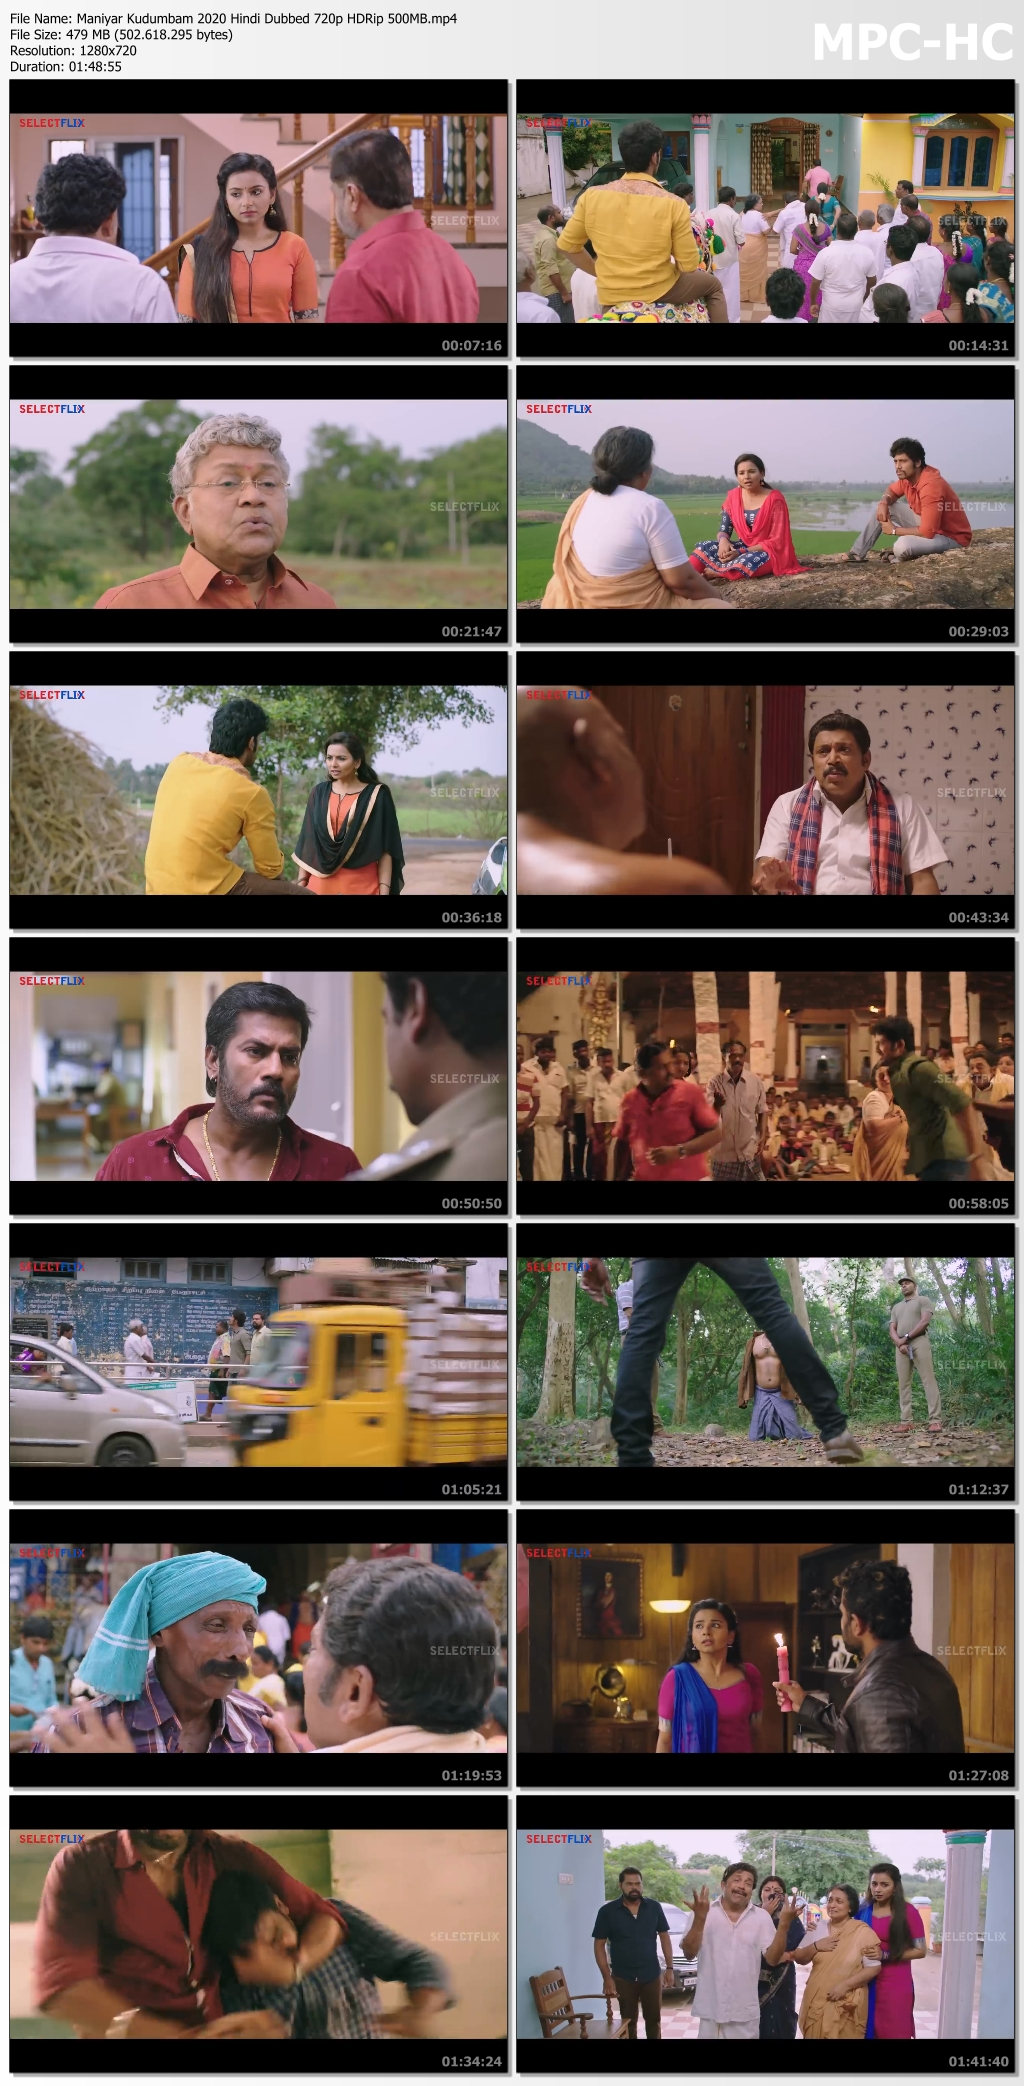 Maniyar-Kudumbam-2020-Hindi-Dubbed-720p-HDRip-500-MB-mp4-thumbs